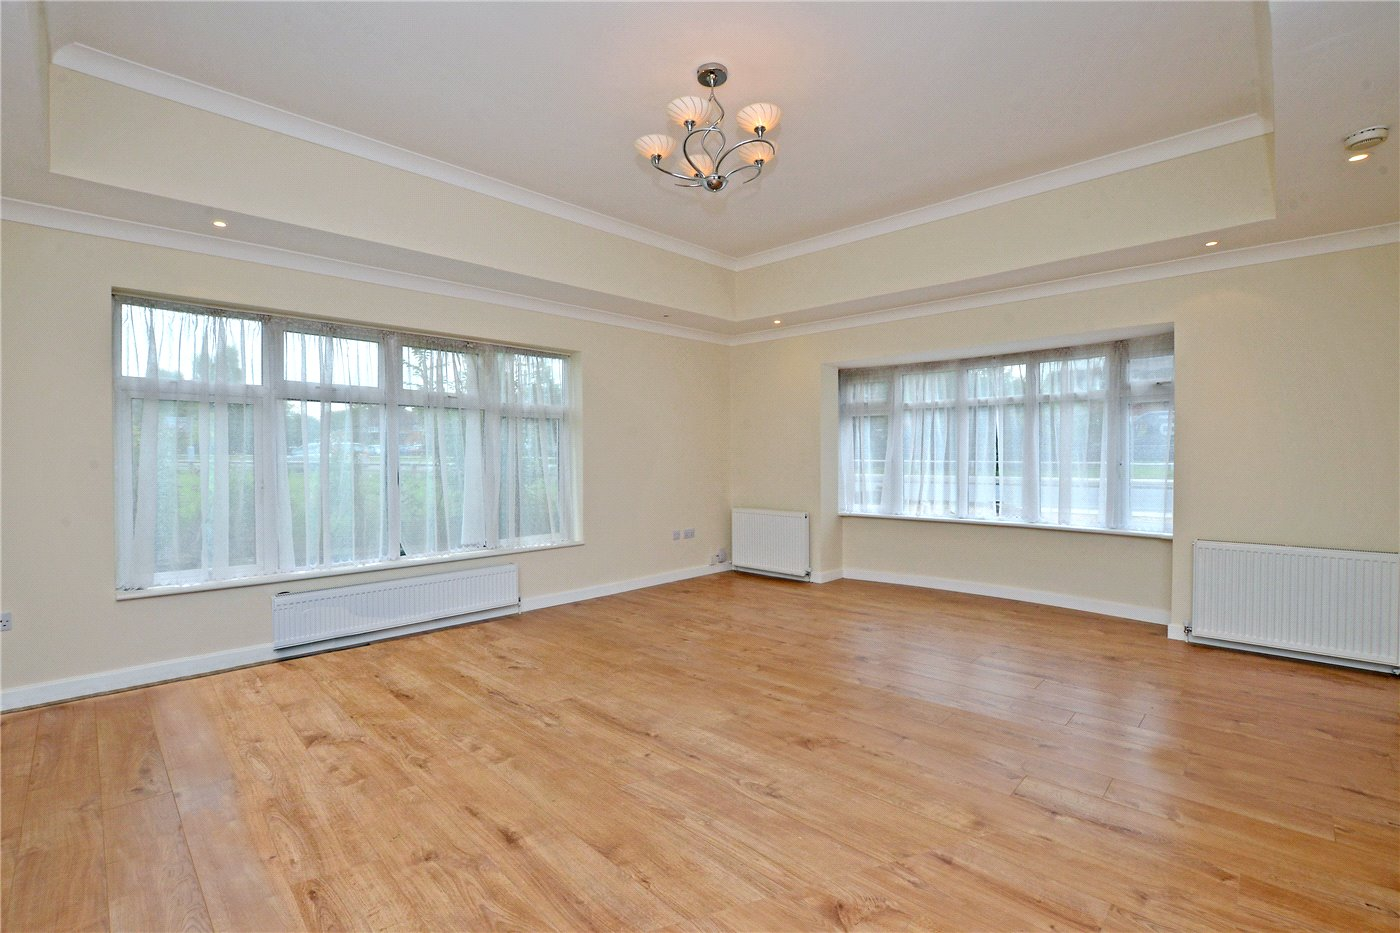 2 Bedrooms Maisonette Flat for sale in Malden Road, Worcester Park, KT4